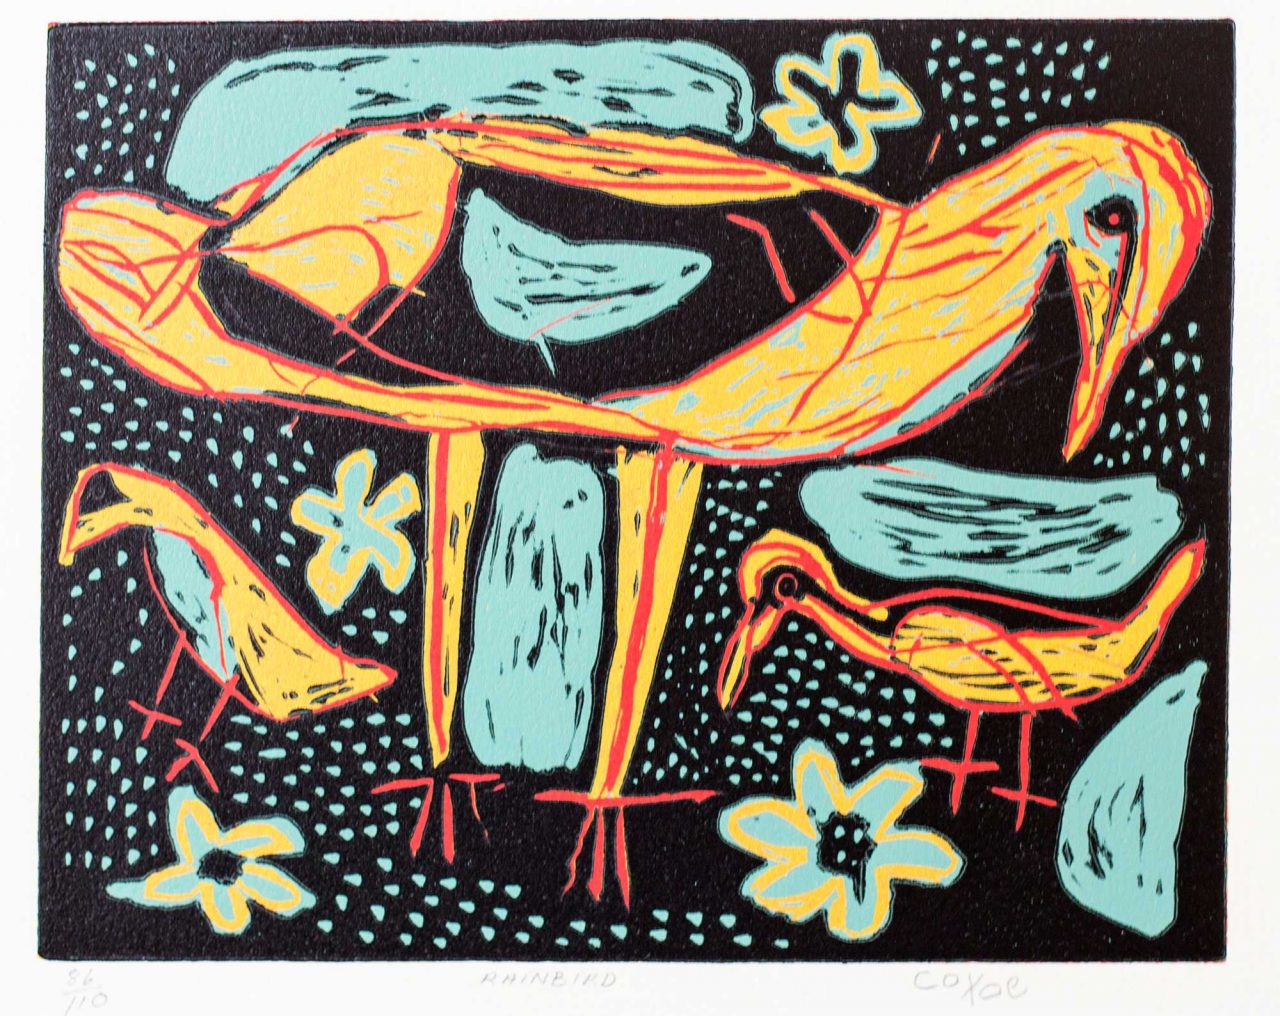 https://www.artsandcollections.com/wp-content/uploads/2021/03/Coixe-Bob-Rainbird-c2000-coloured-linocut-42-x-46-cm-edition-of-110_Rebecca-Hossack-Art-Gallery-1280x1016.jpg